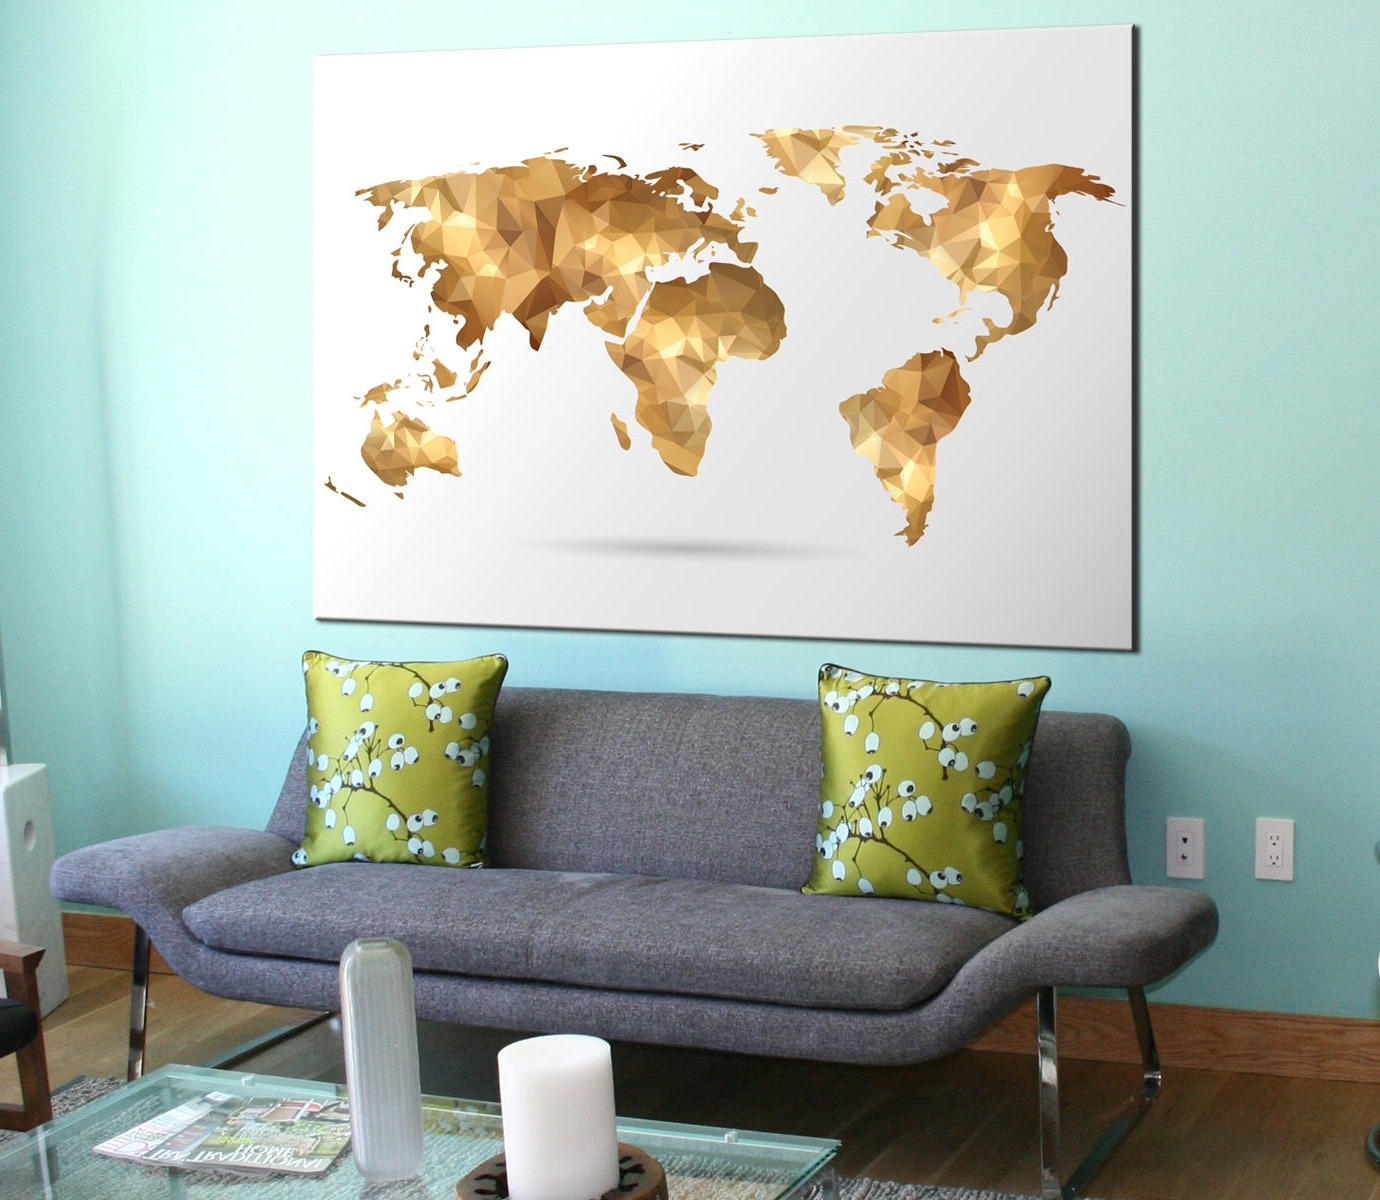 Most Popular Abstract World Map Wall Art Intended For Golden Geometric World Map Canvas Panels Set, Large Modern (View 6 of 15)